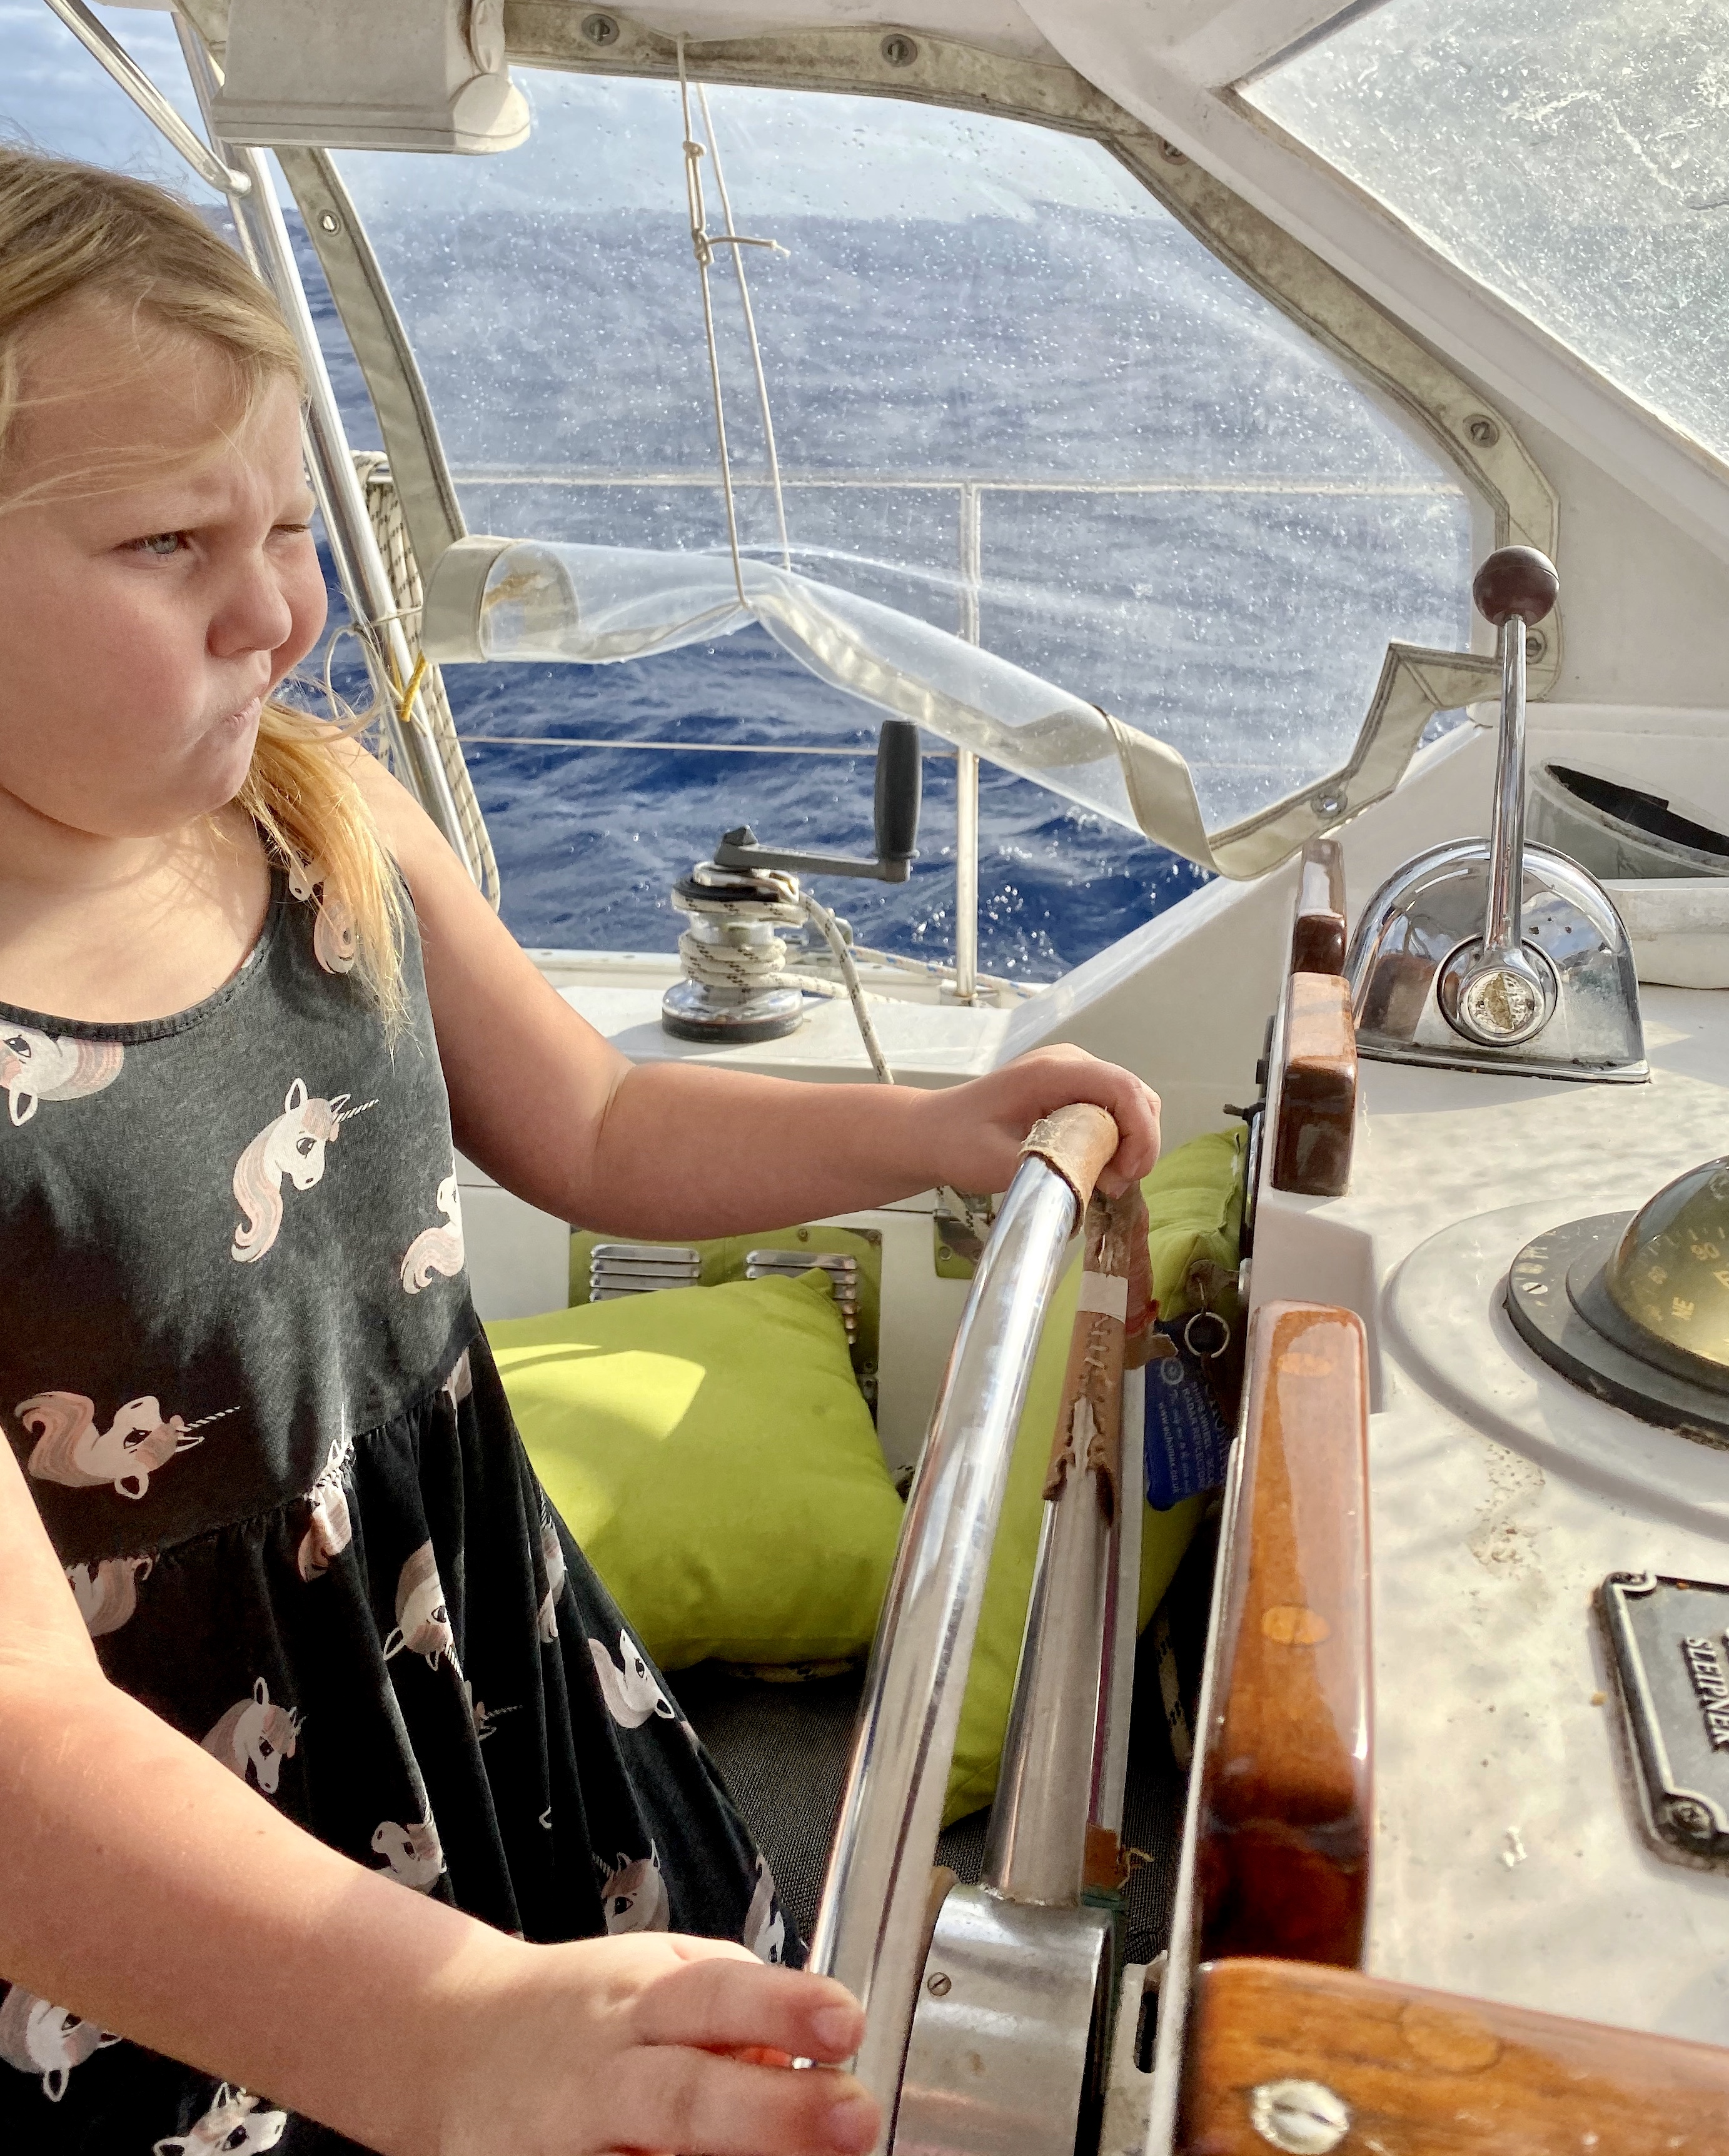 Lorelei at the helm